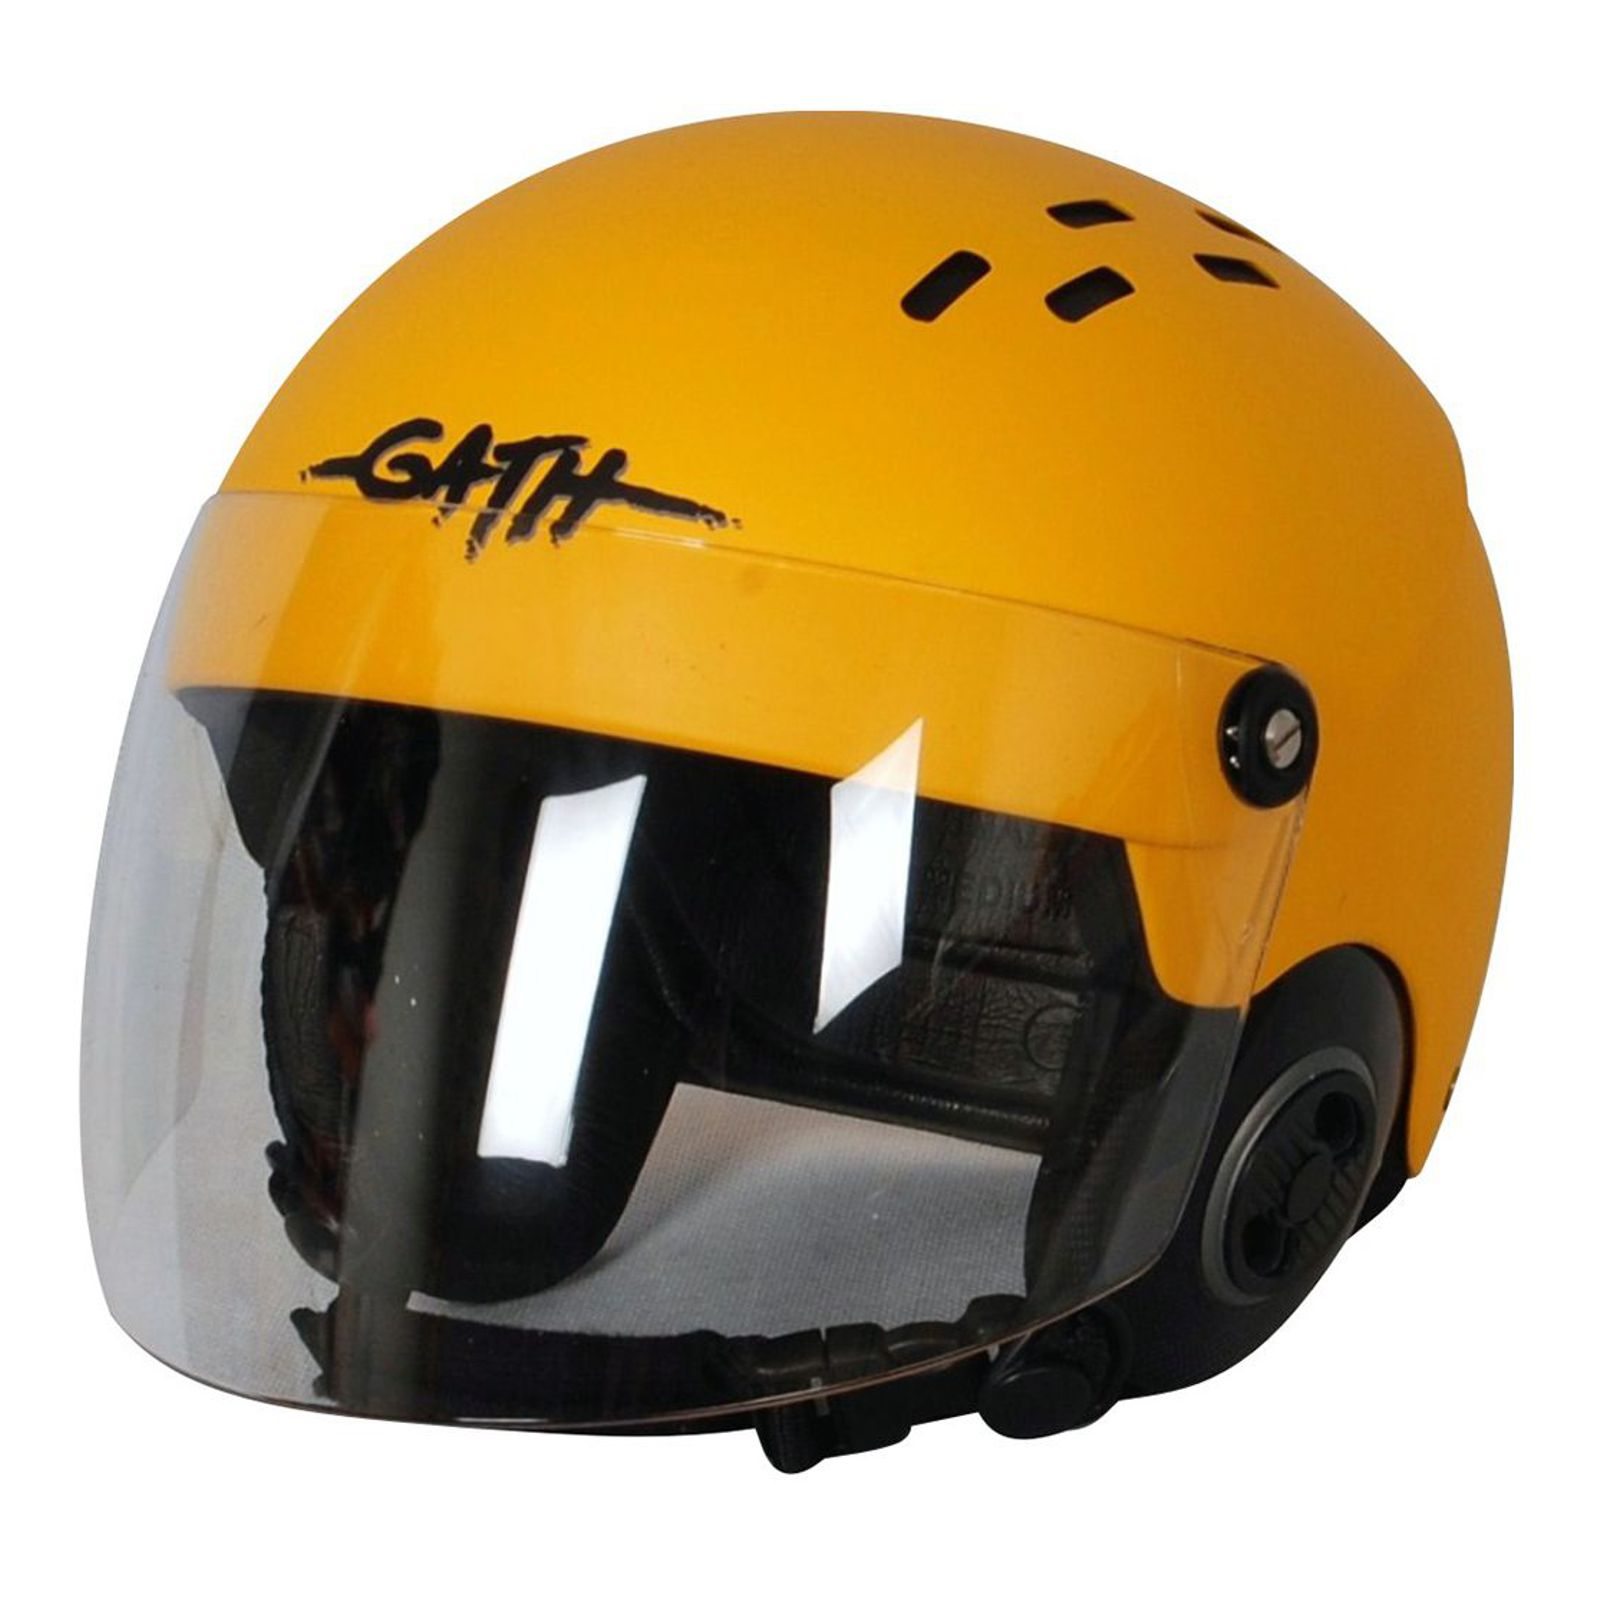 GATH Helm RESCUE Safety Gelb matt Gr M mit klarem Vollvisier